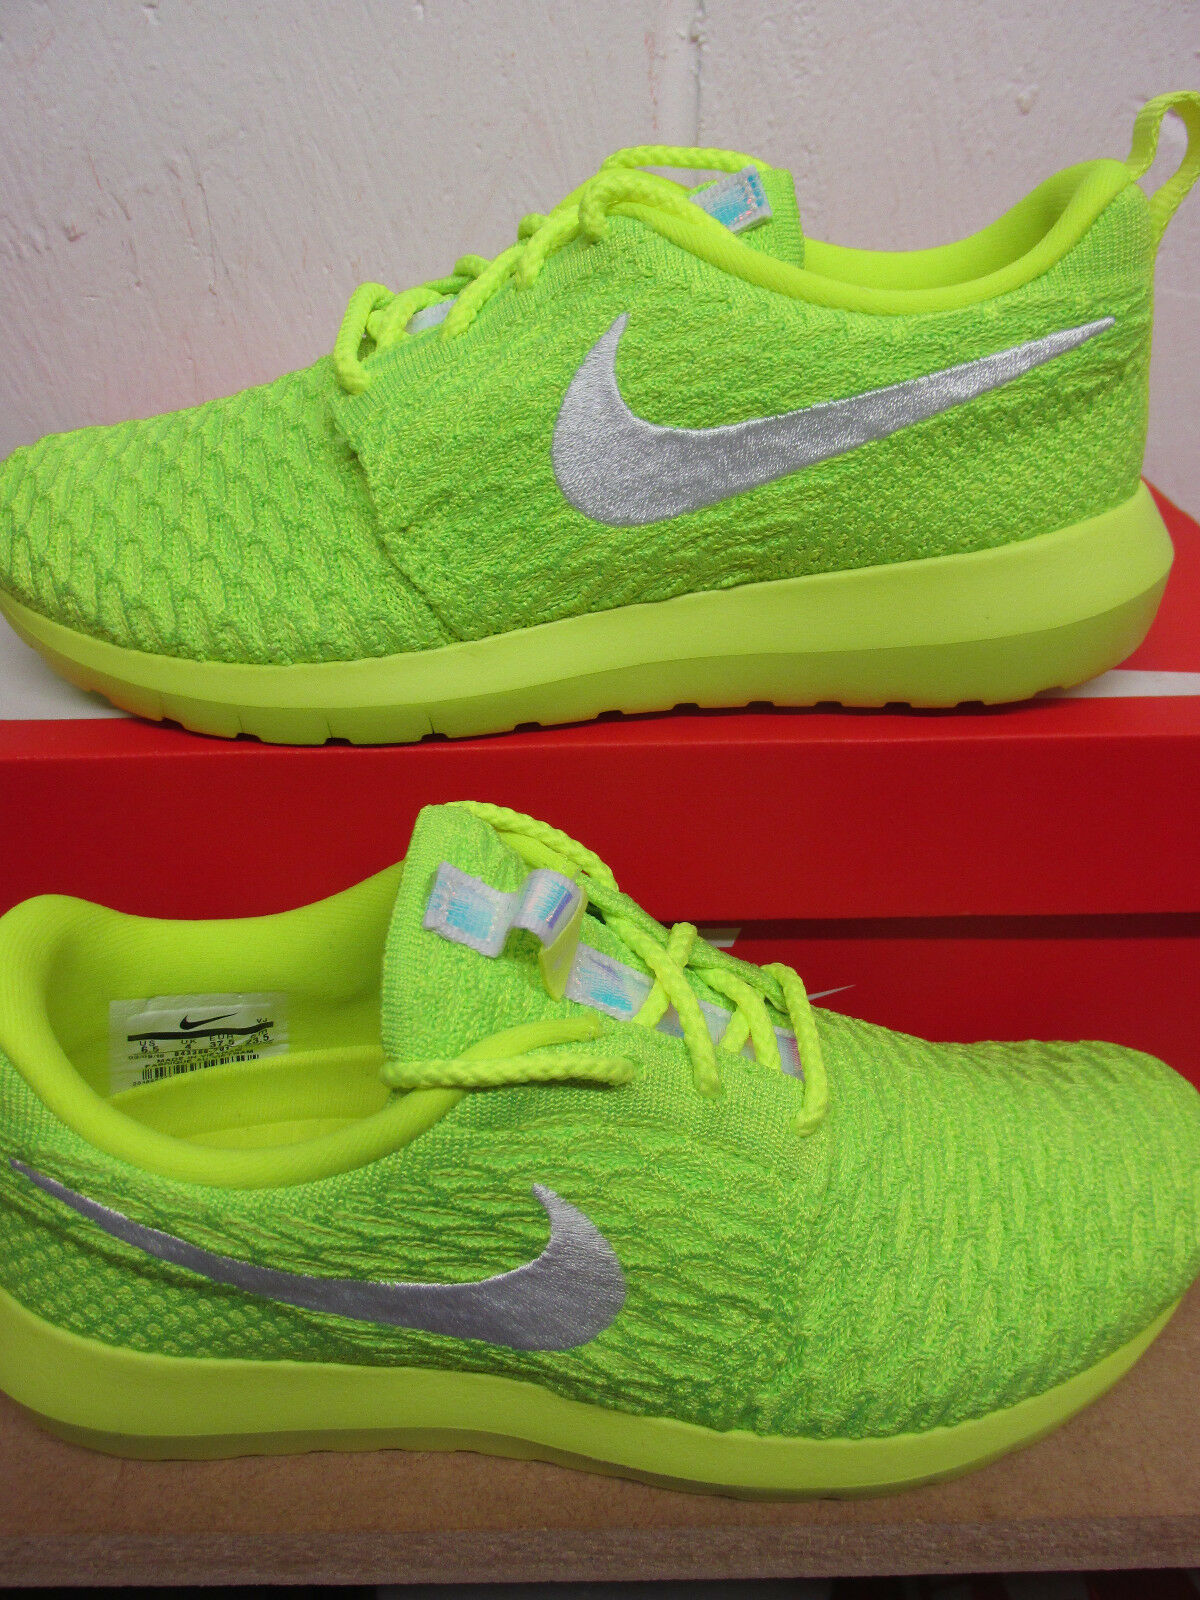 Nike Womens Roshe NM Flyknit Runing Trainers 843386 701 Sneakers Shoes